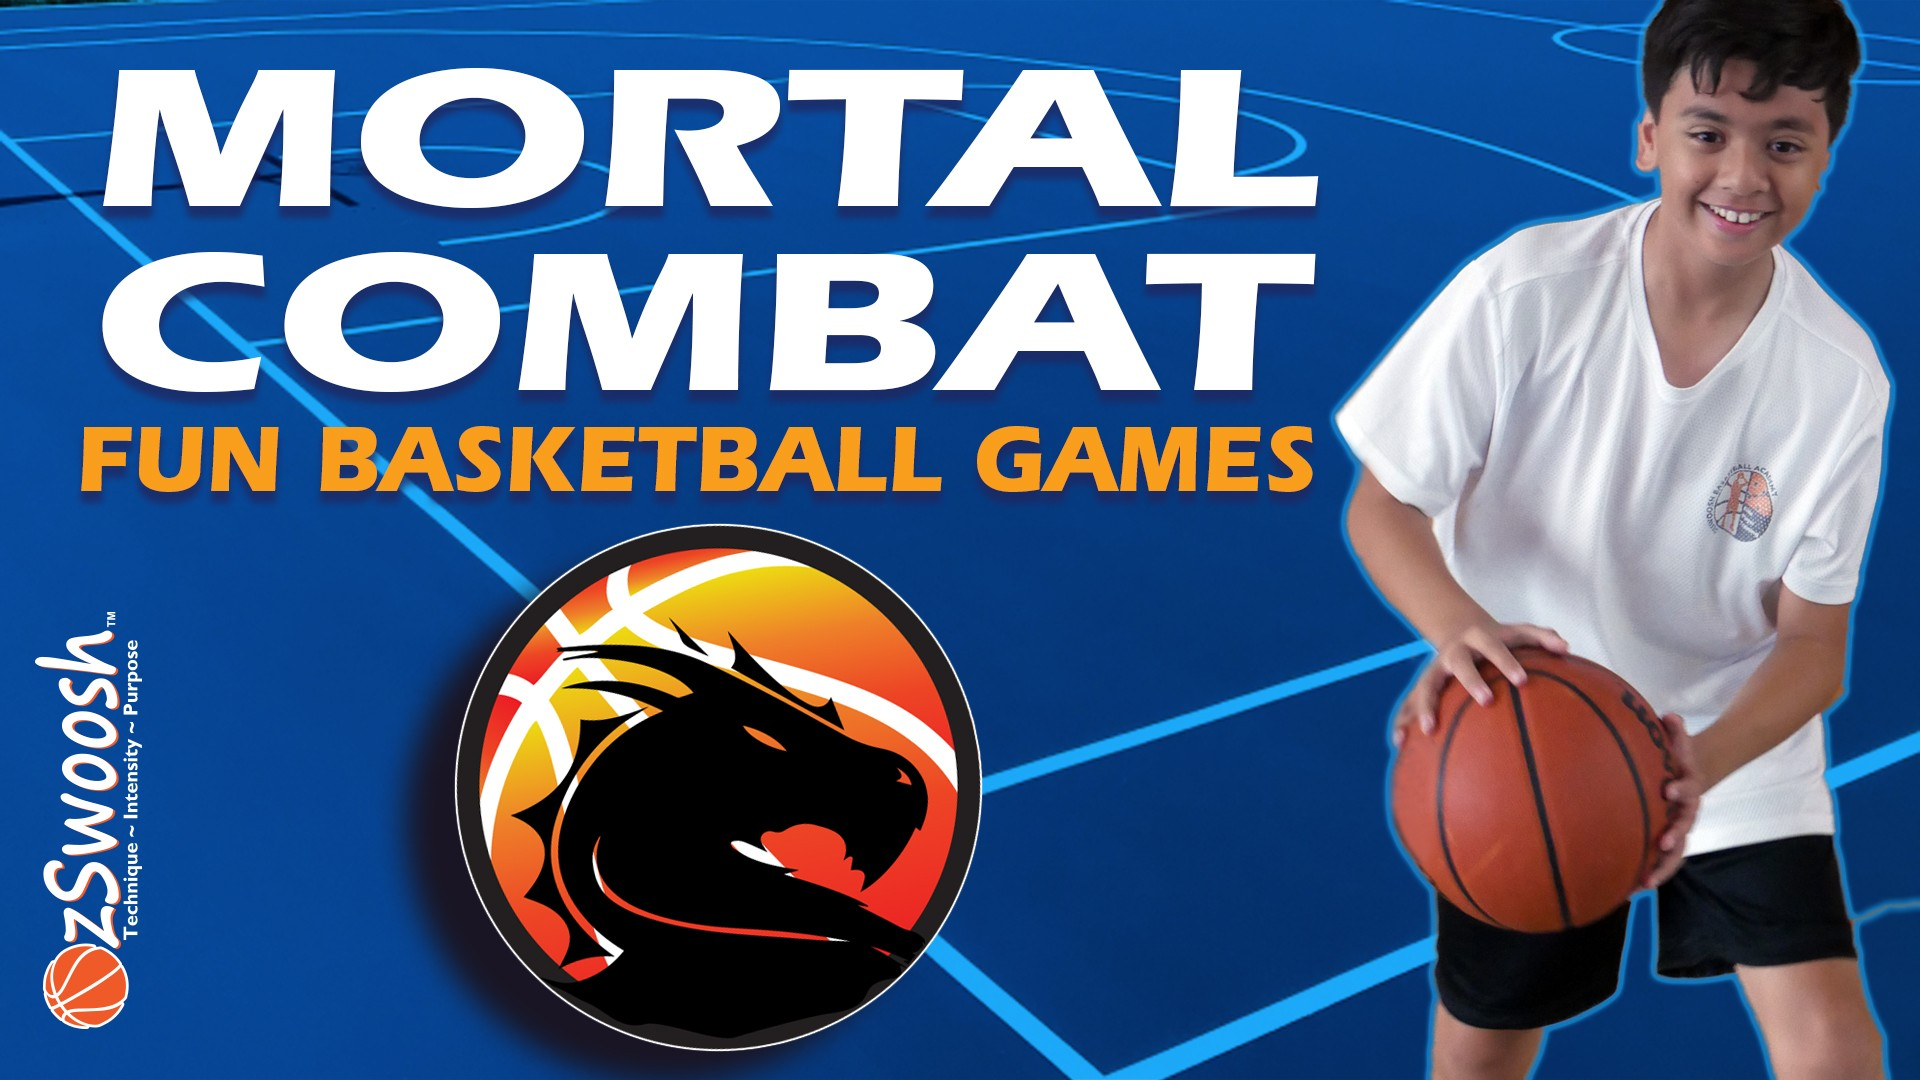 Fun Youth Basketball Drills For Kids - Mortal Combat (Dribbling Game)